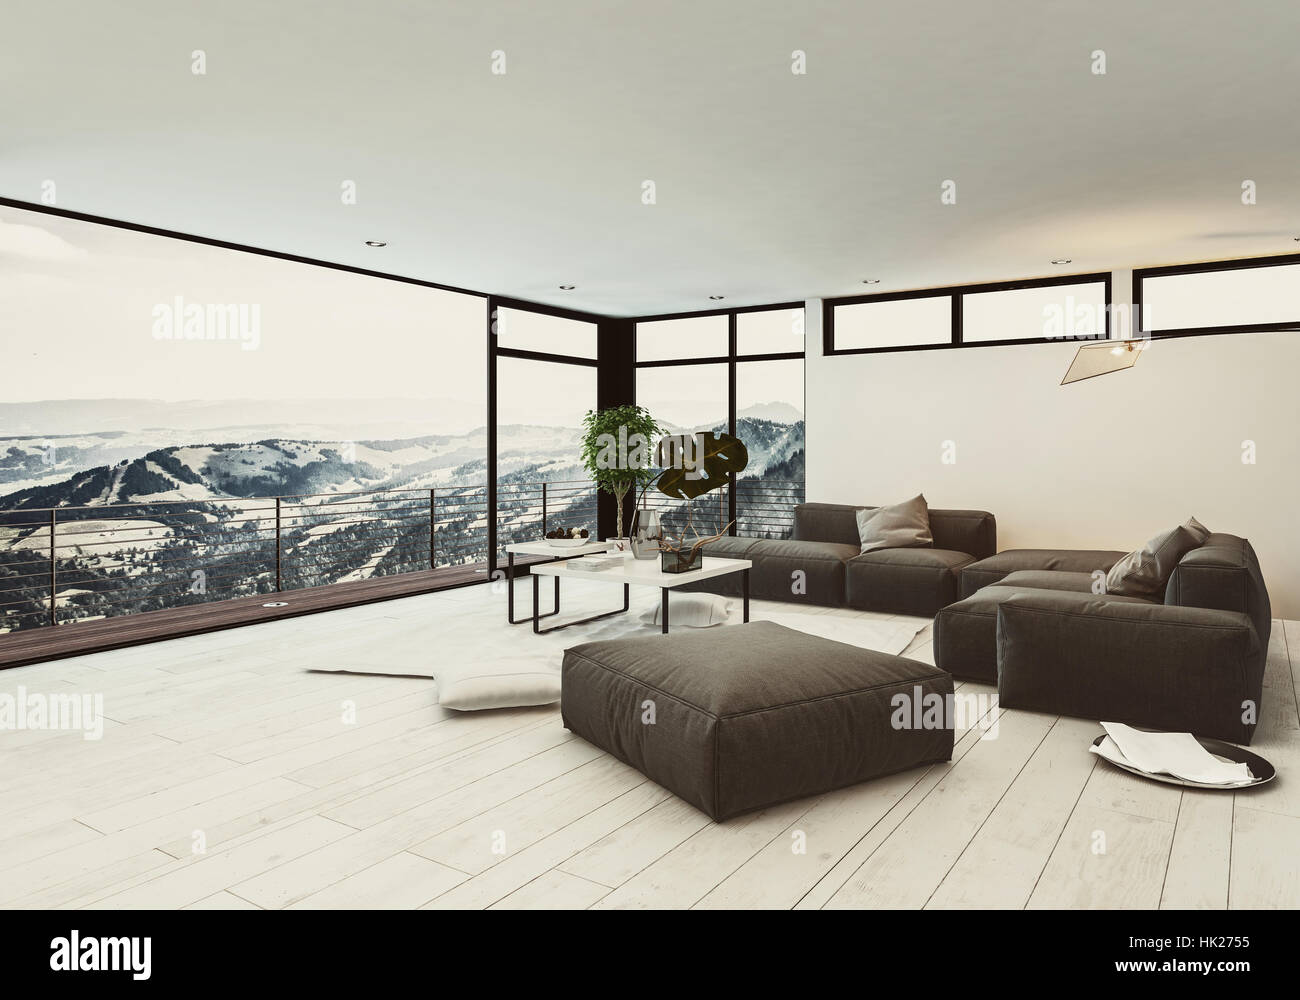 View of spacious room in hotel or penthouse with minimalist interior ...